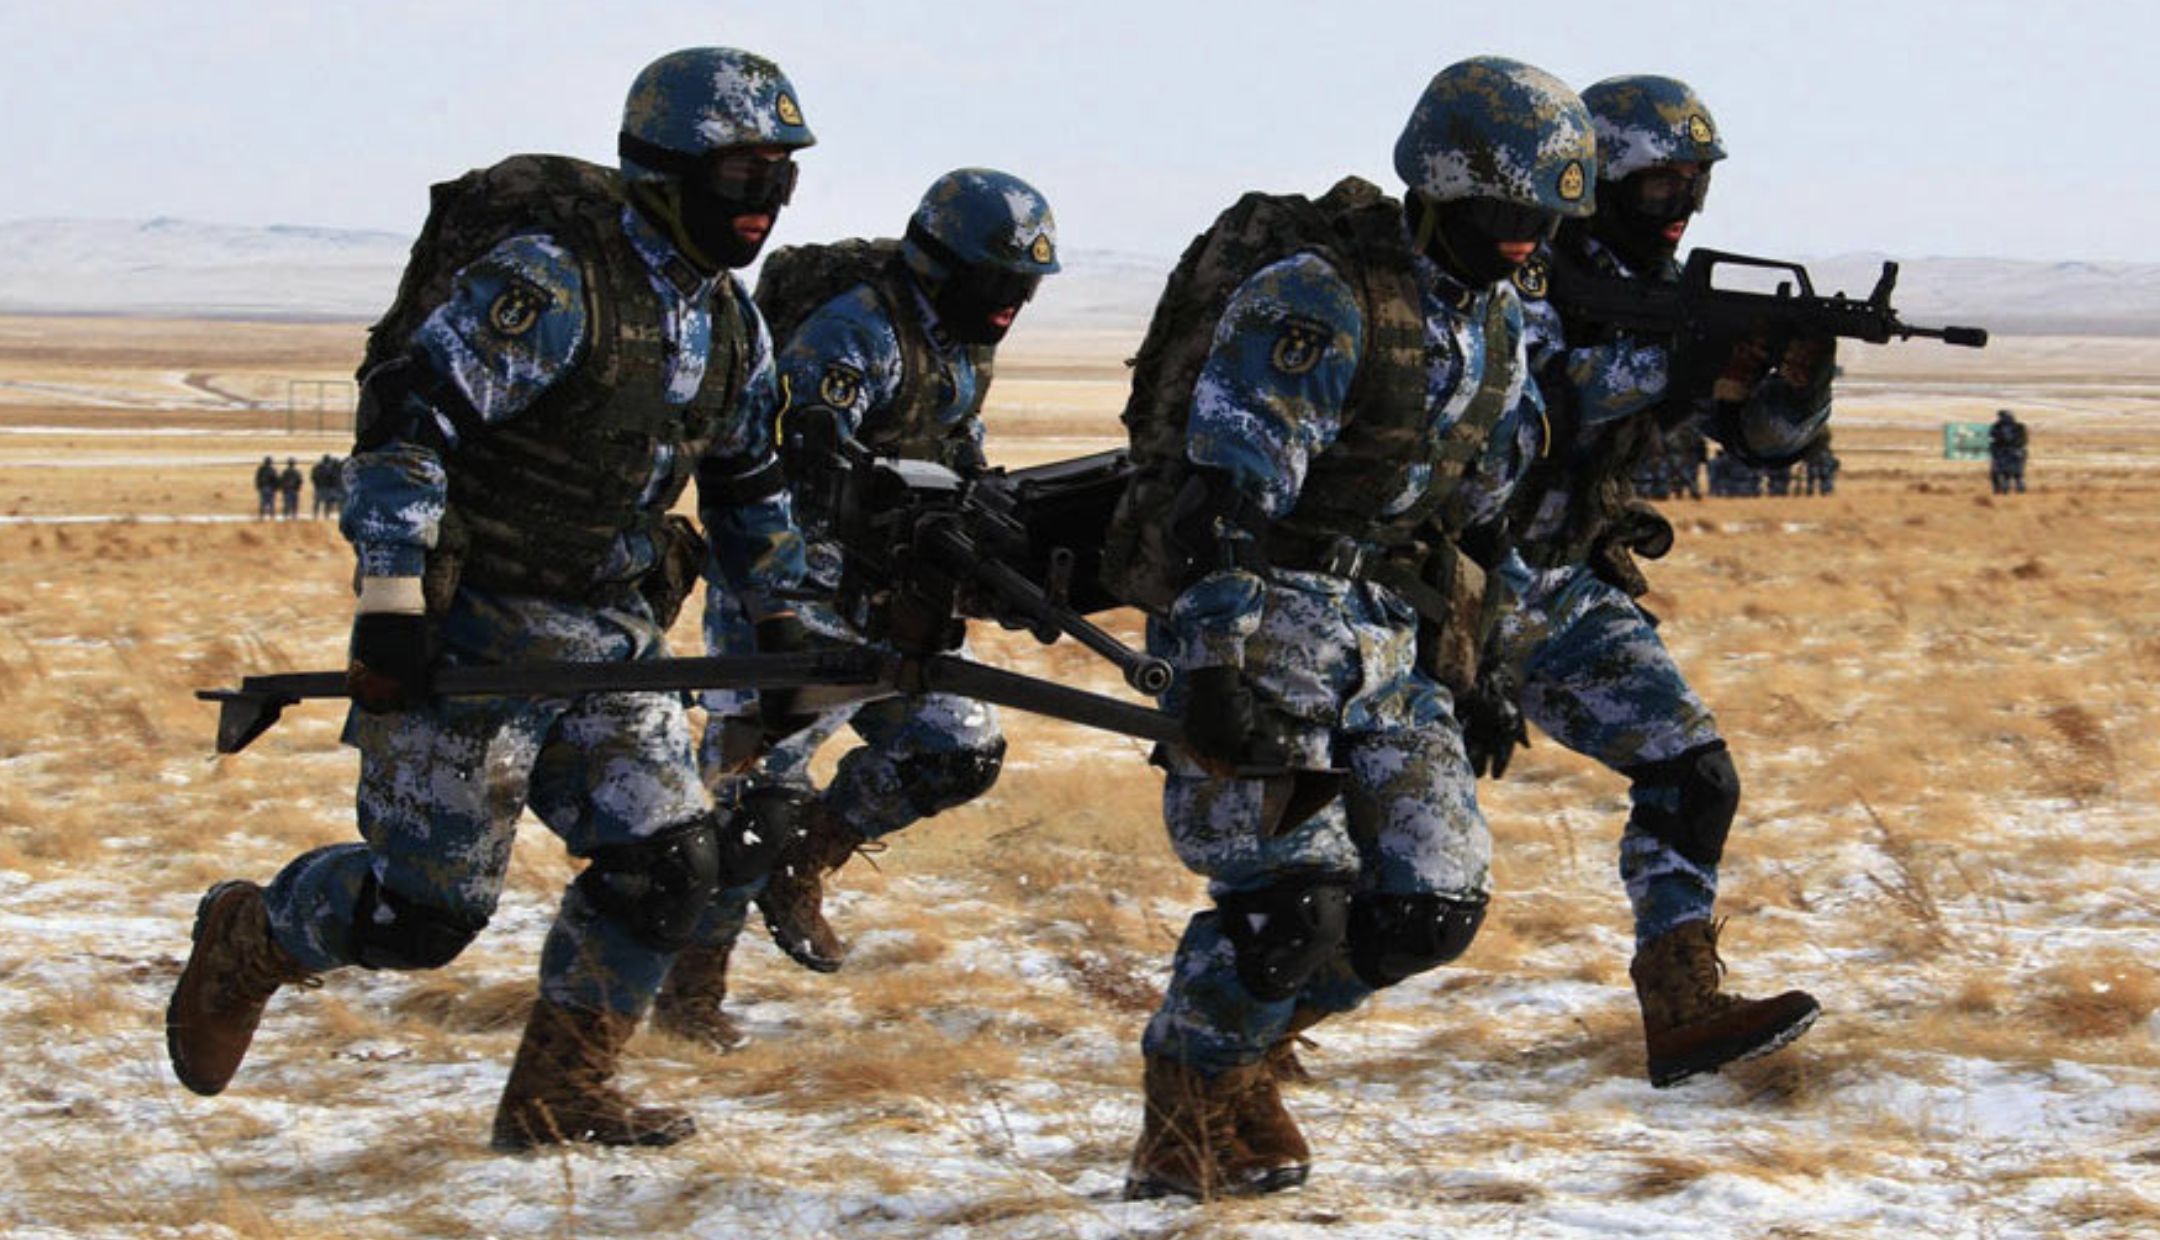 Chinese Marines may be Operating in IOR in Five Years